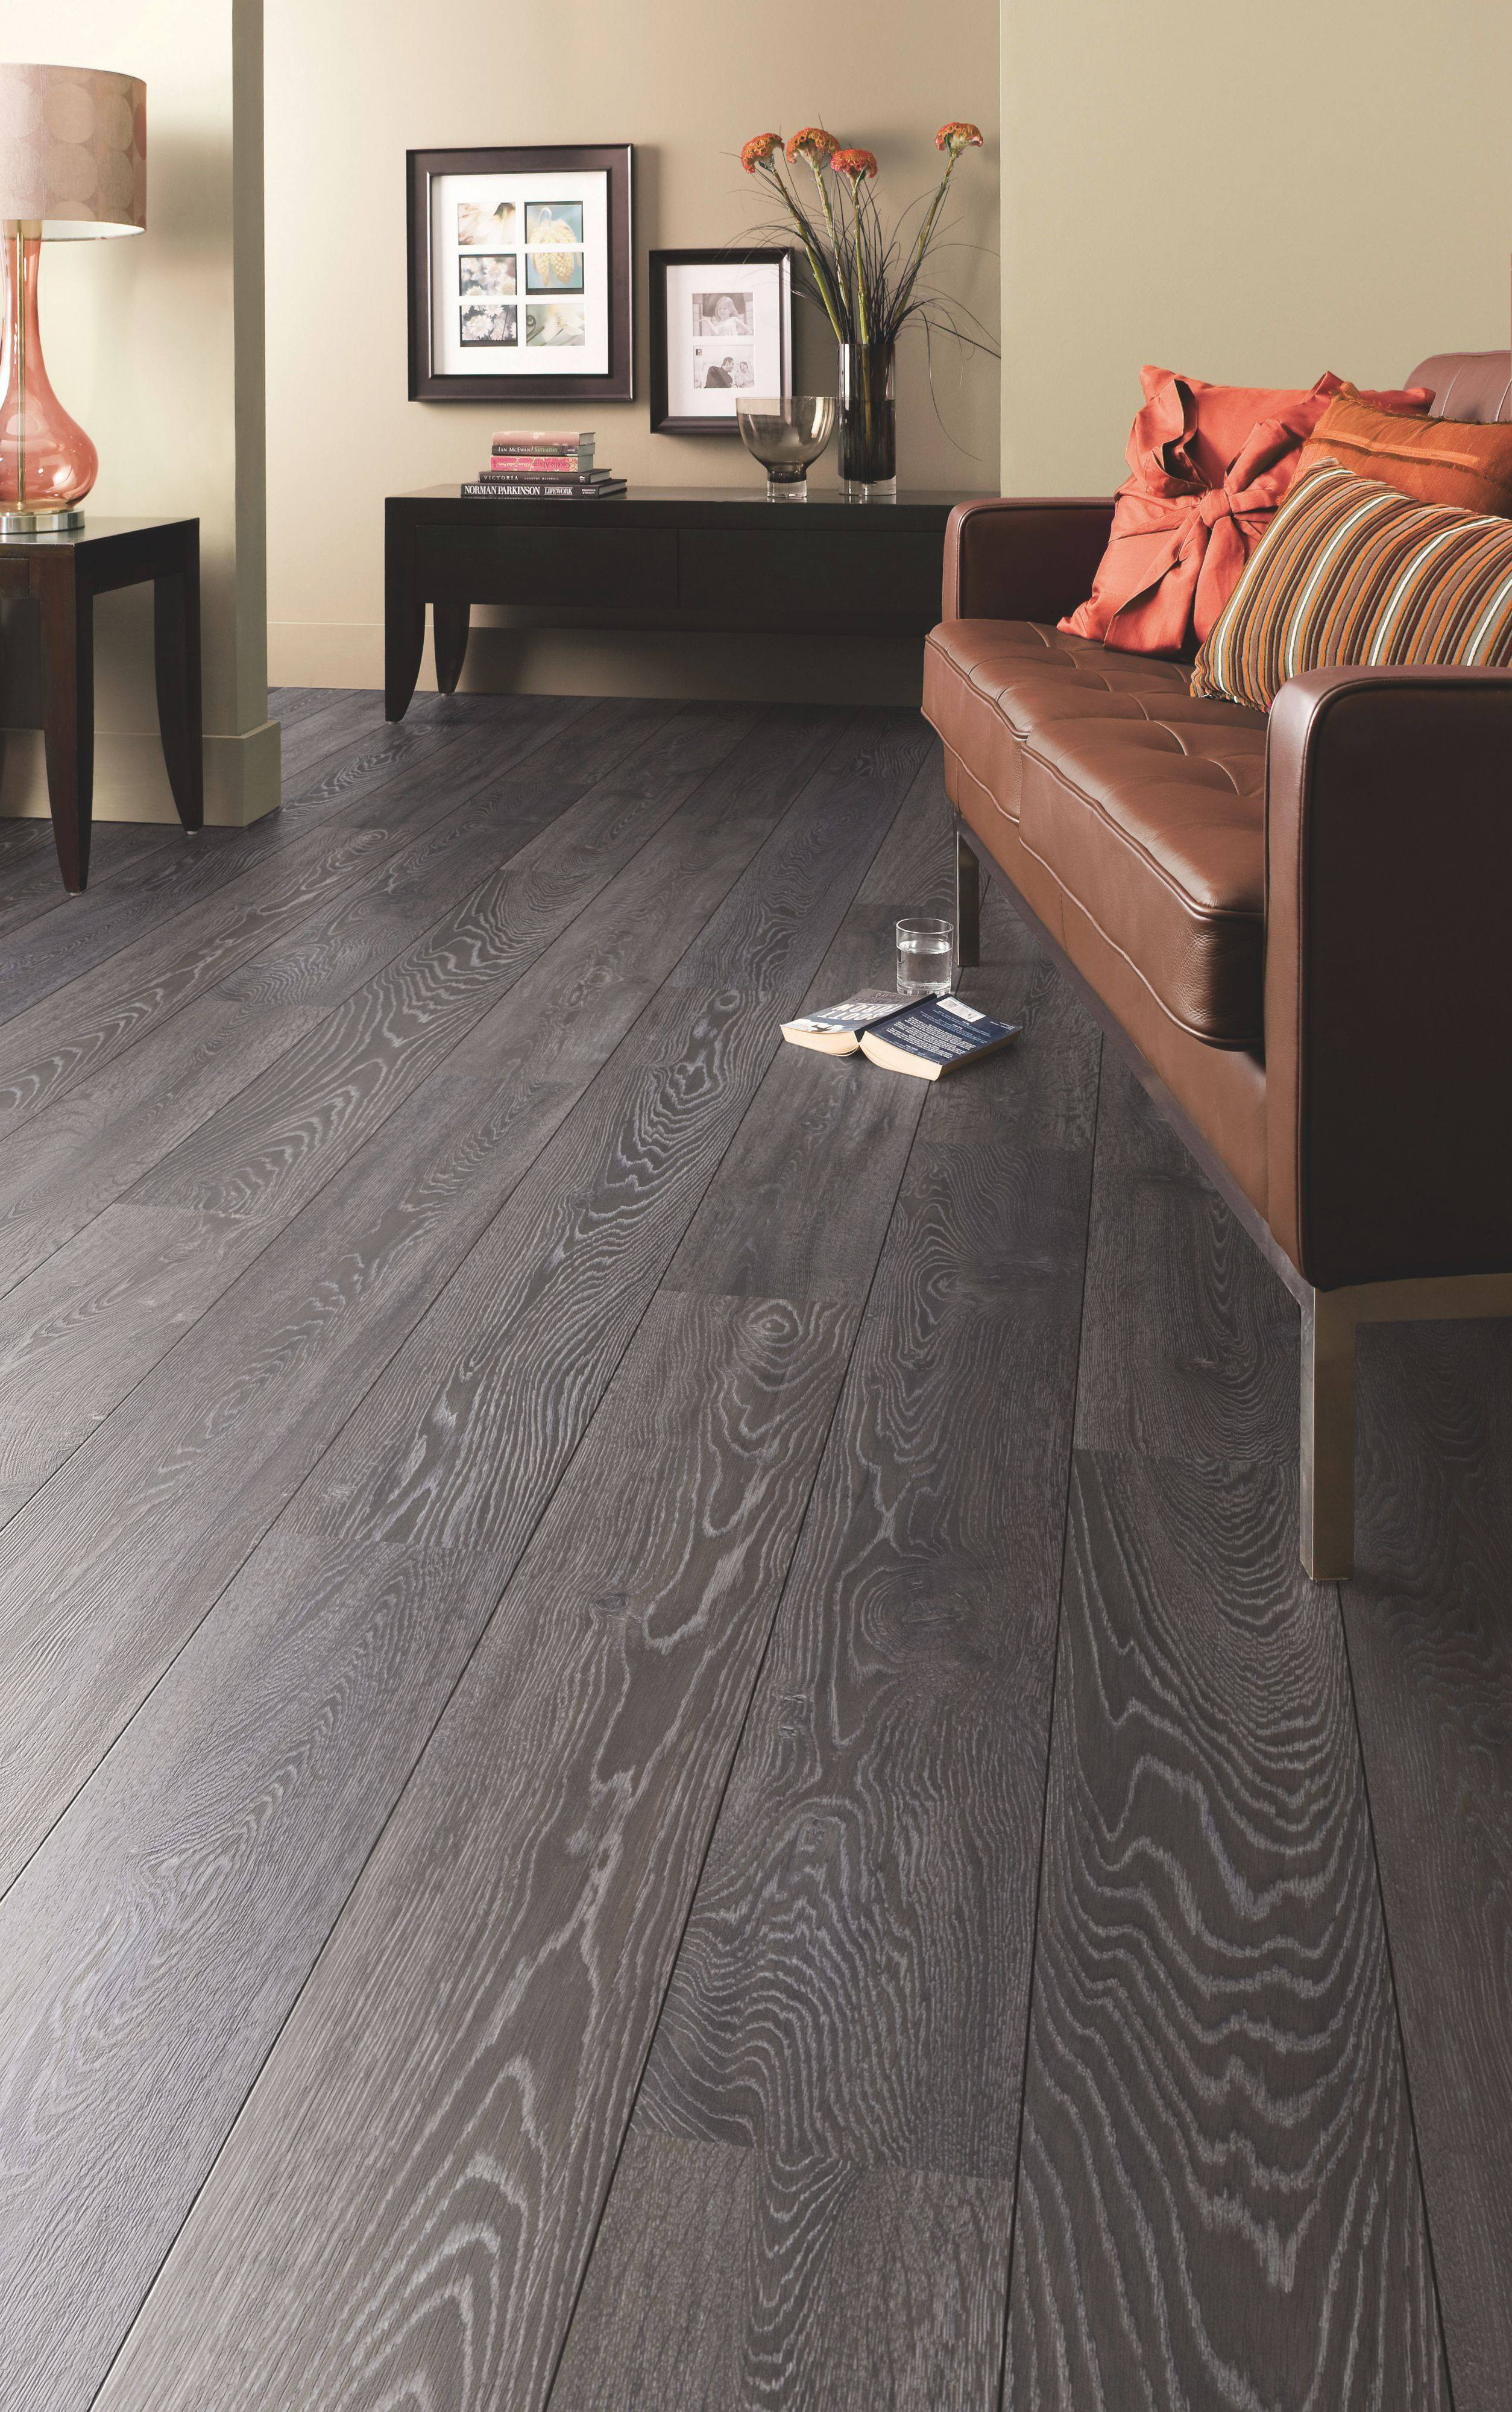 hardwood flooring types pros and cons of the laminate flooring in bathrooms pros and cons amazing design with regard to laminate flooring in bathrooms pros and cons lovely of bodrum grey wood effect laminate flooring 2